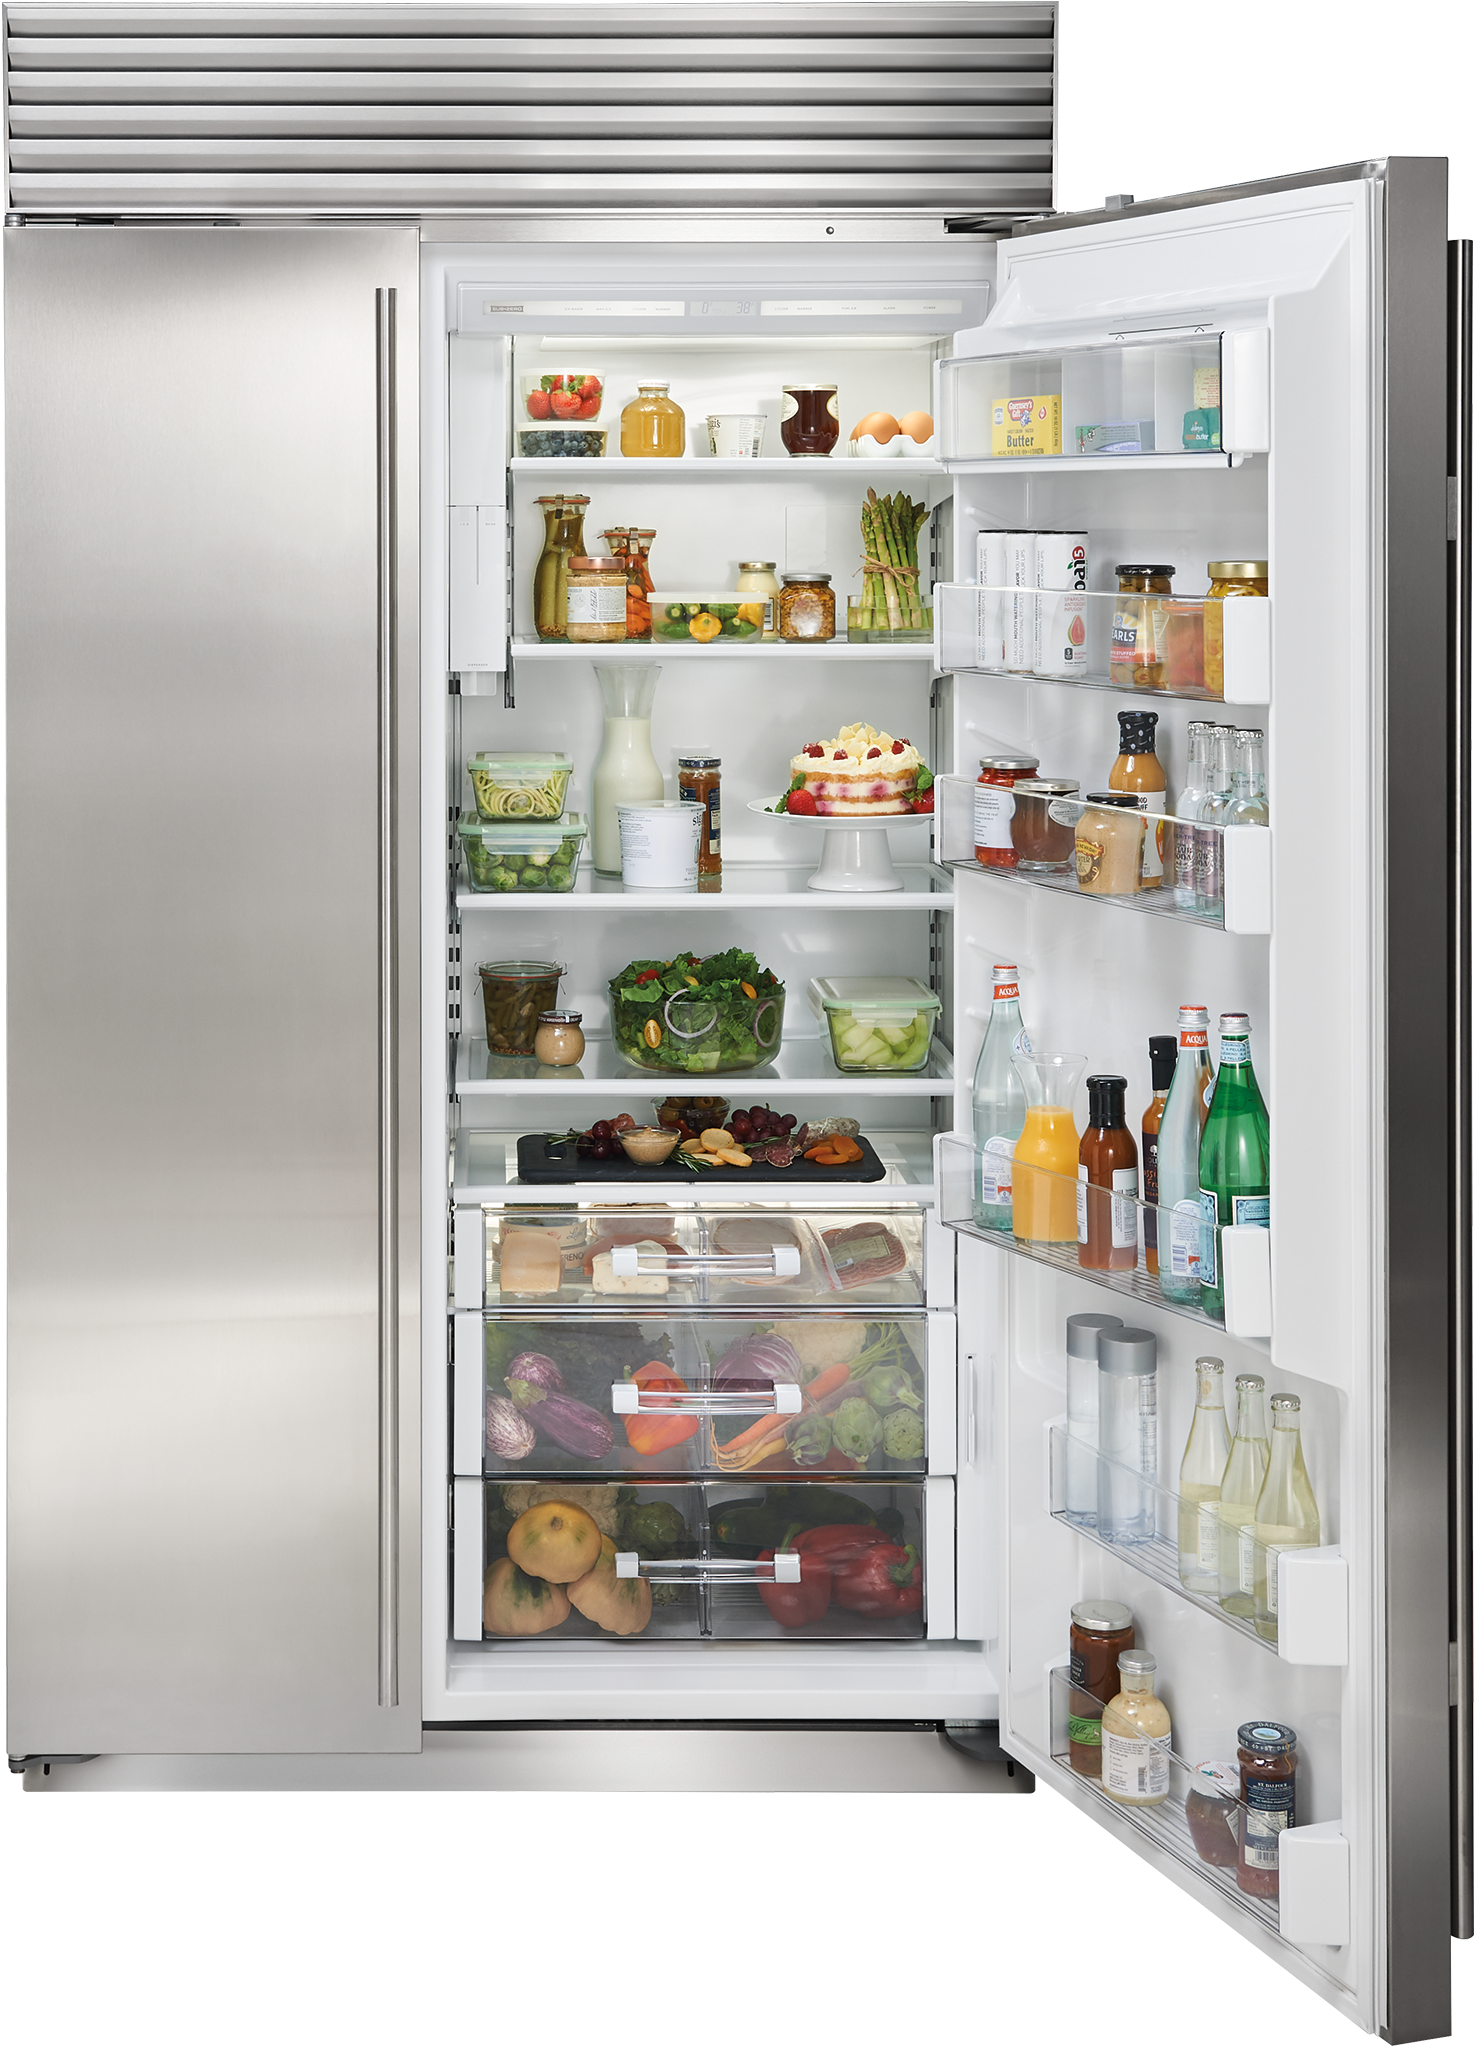 48 Classic Side By Side Refrigerator Freezer With Internal Dispenser With Images Refrigerator Freezer Side By Side Refrigerator Custom Refrigerator